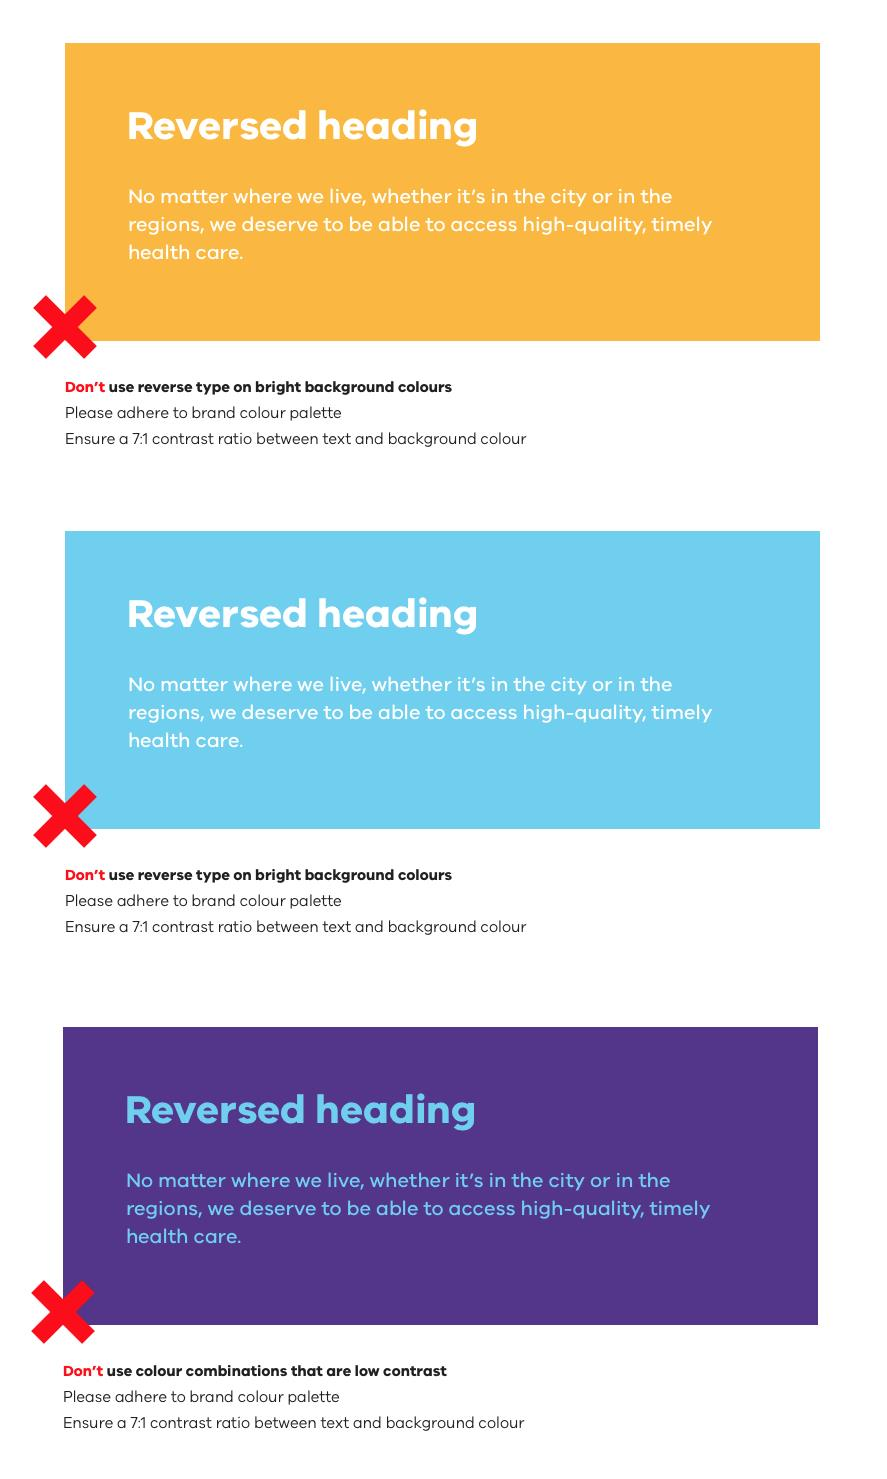 Don't use reverse type on bright background colours. Please adhere to brand colour palette and ensure a 7:1 ratio between text and background colour